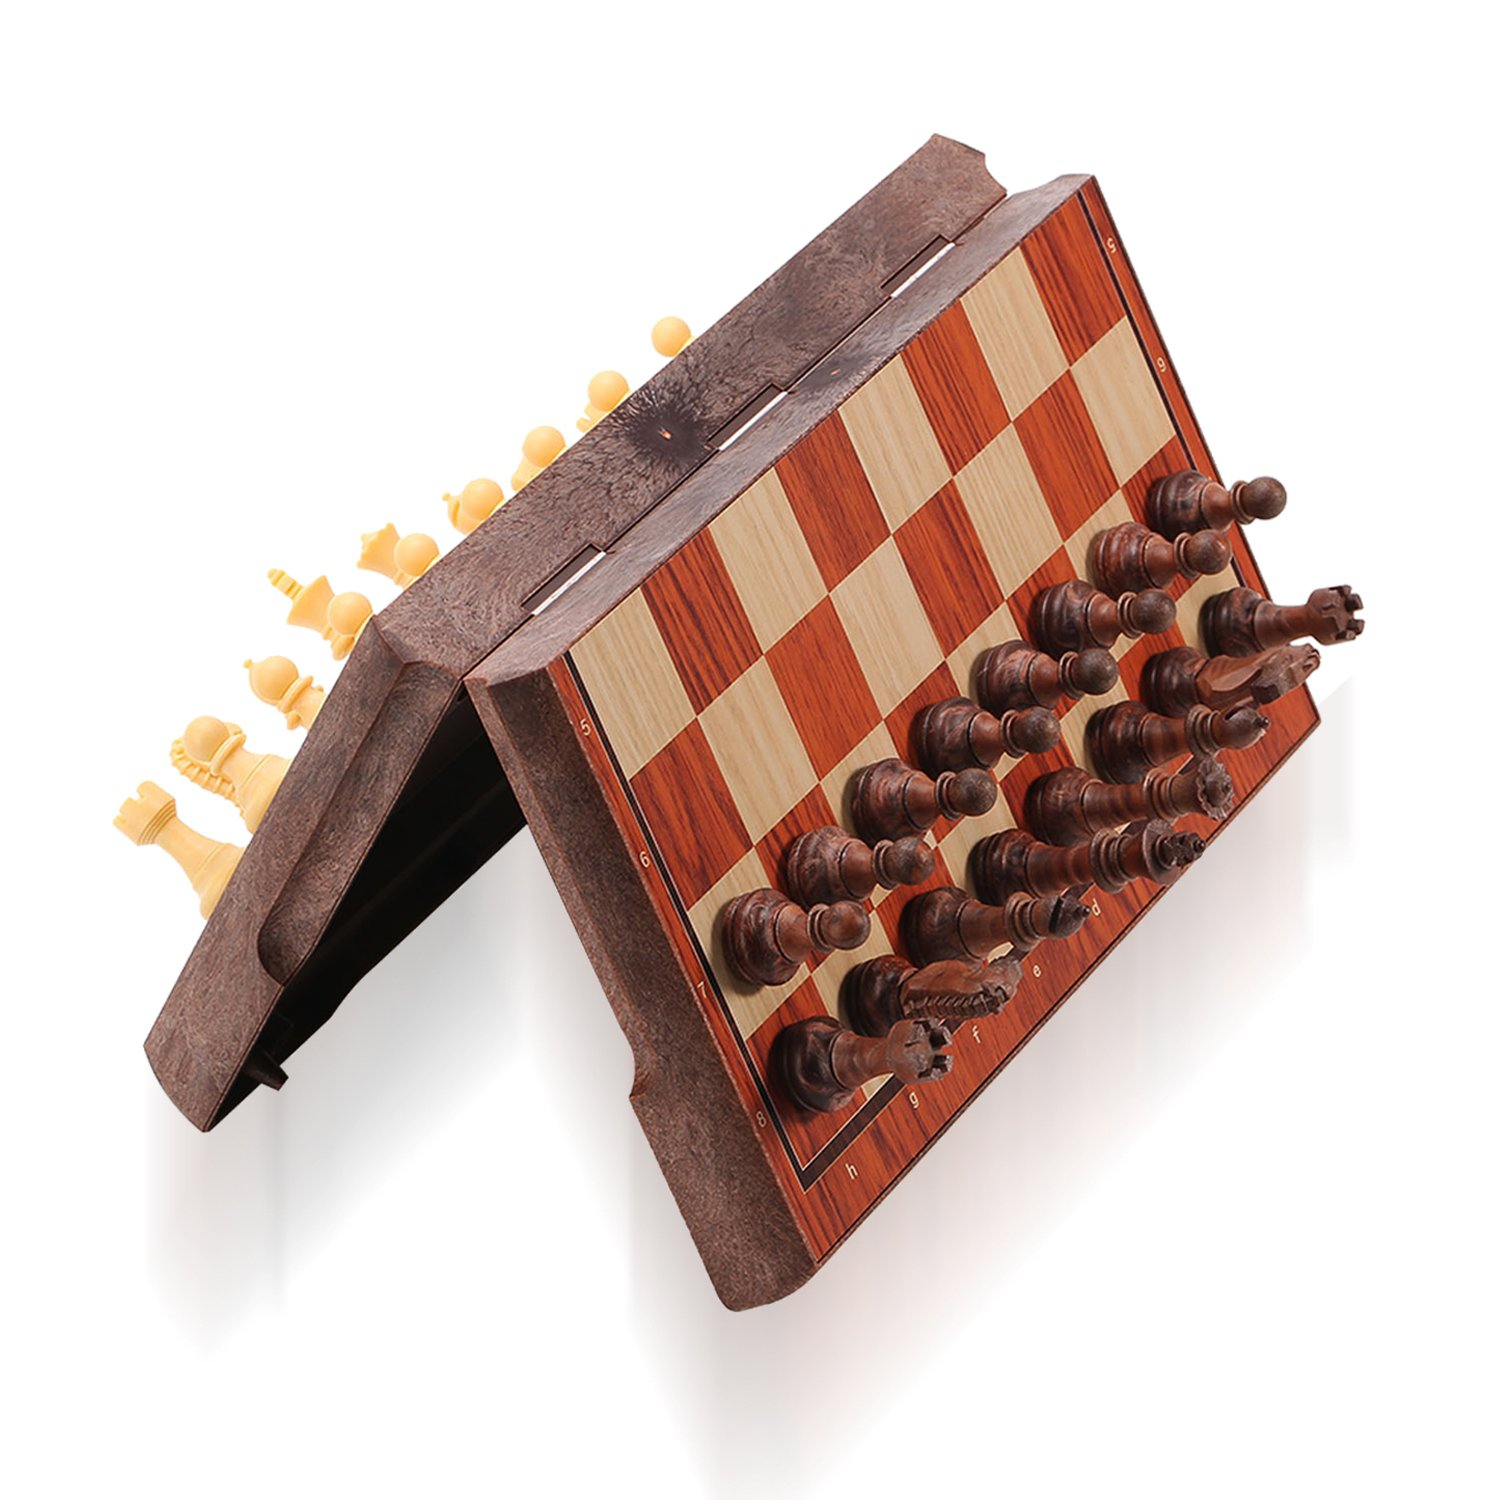 ColorGo Magnetic Travel Chess Set, Portable Mini Chess Board Game for Adults and Kids by ColorGo